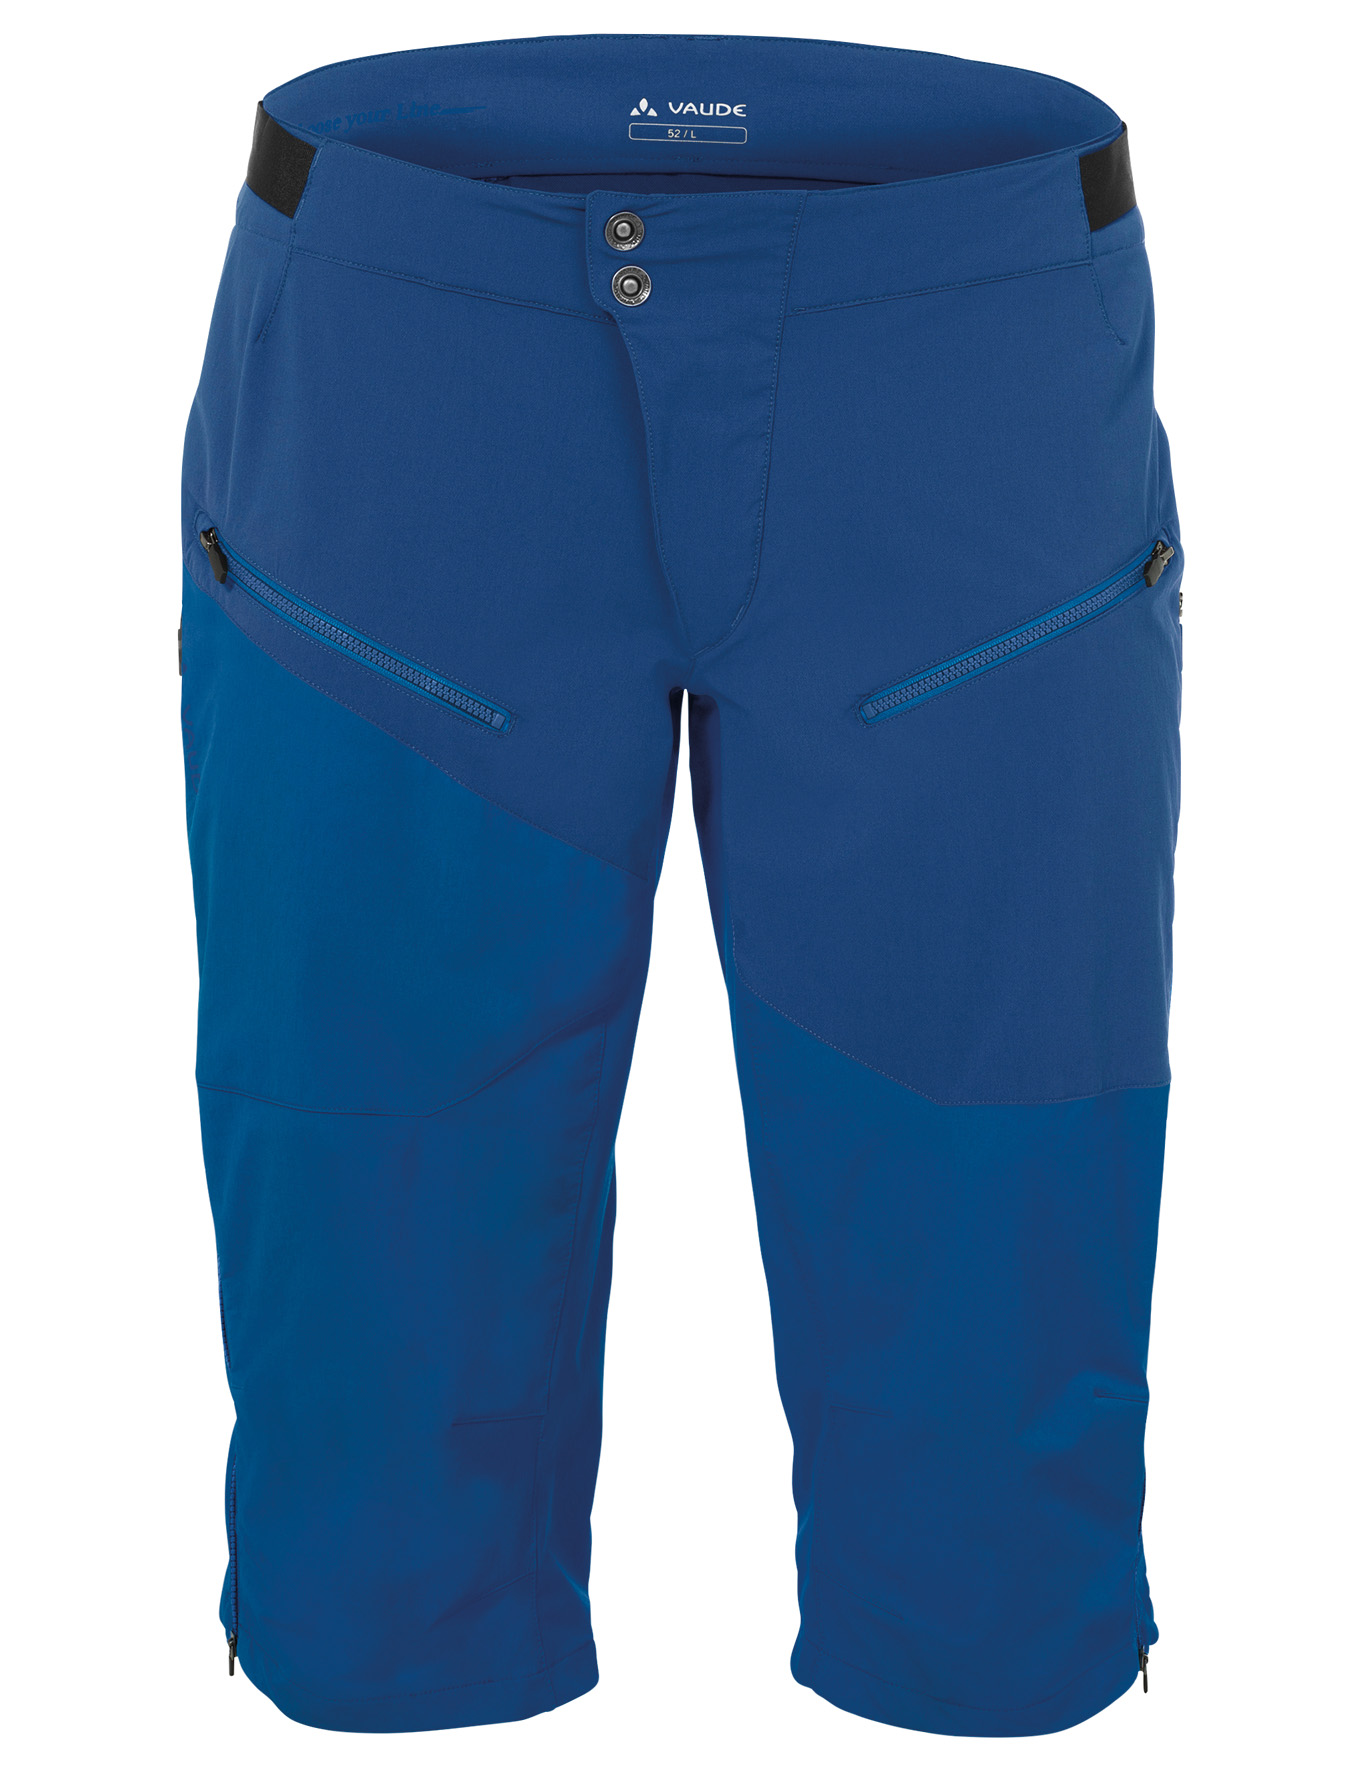 VAUDE Men´s Garbanzo Shorts hydro blue/royal Größe XL - schneider-sports